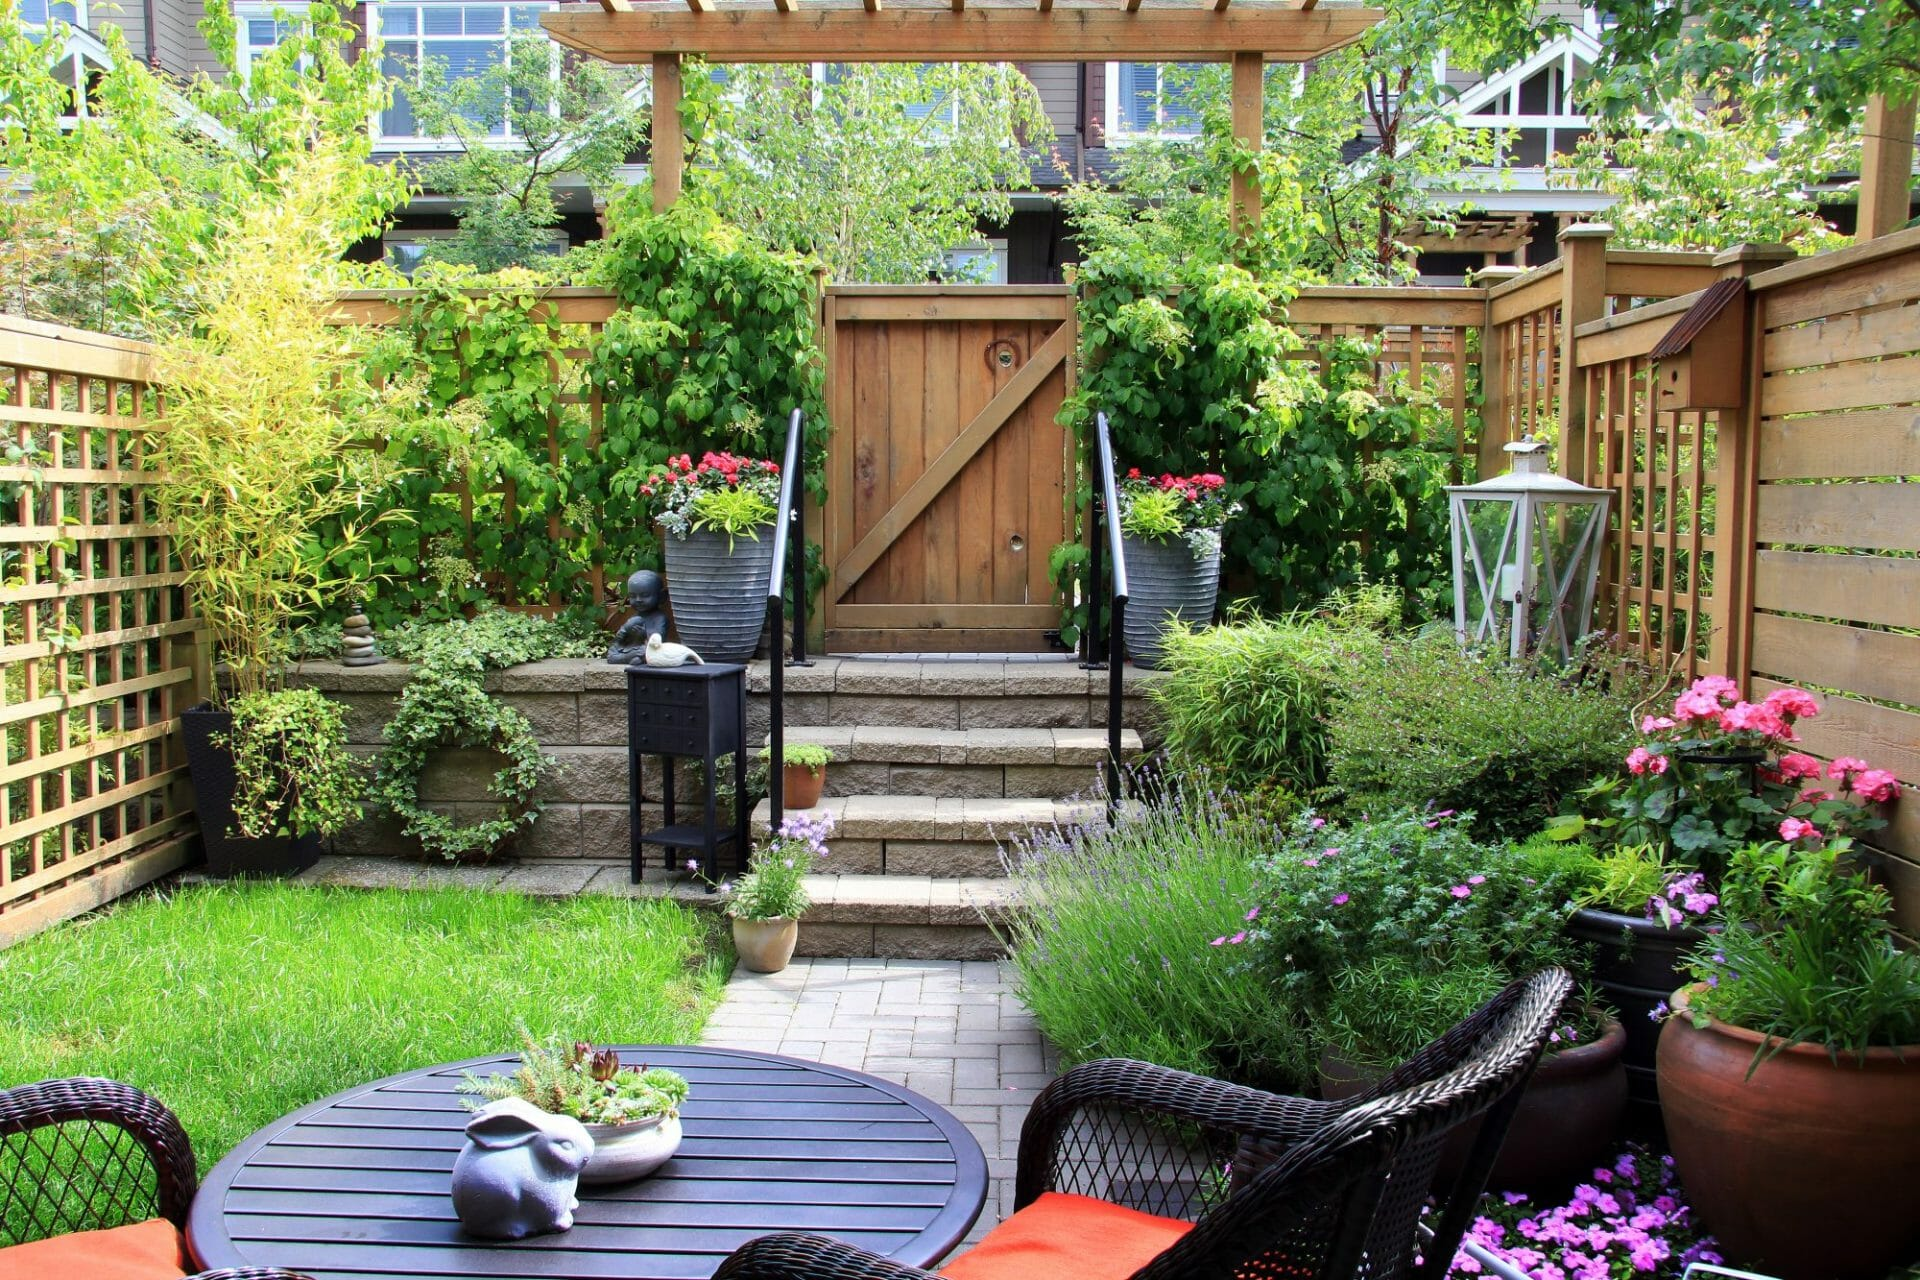 How to Landscape a Backyard